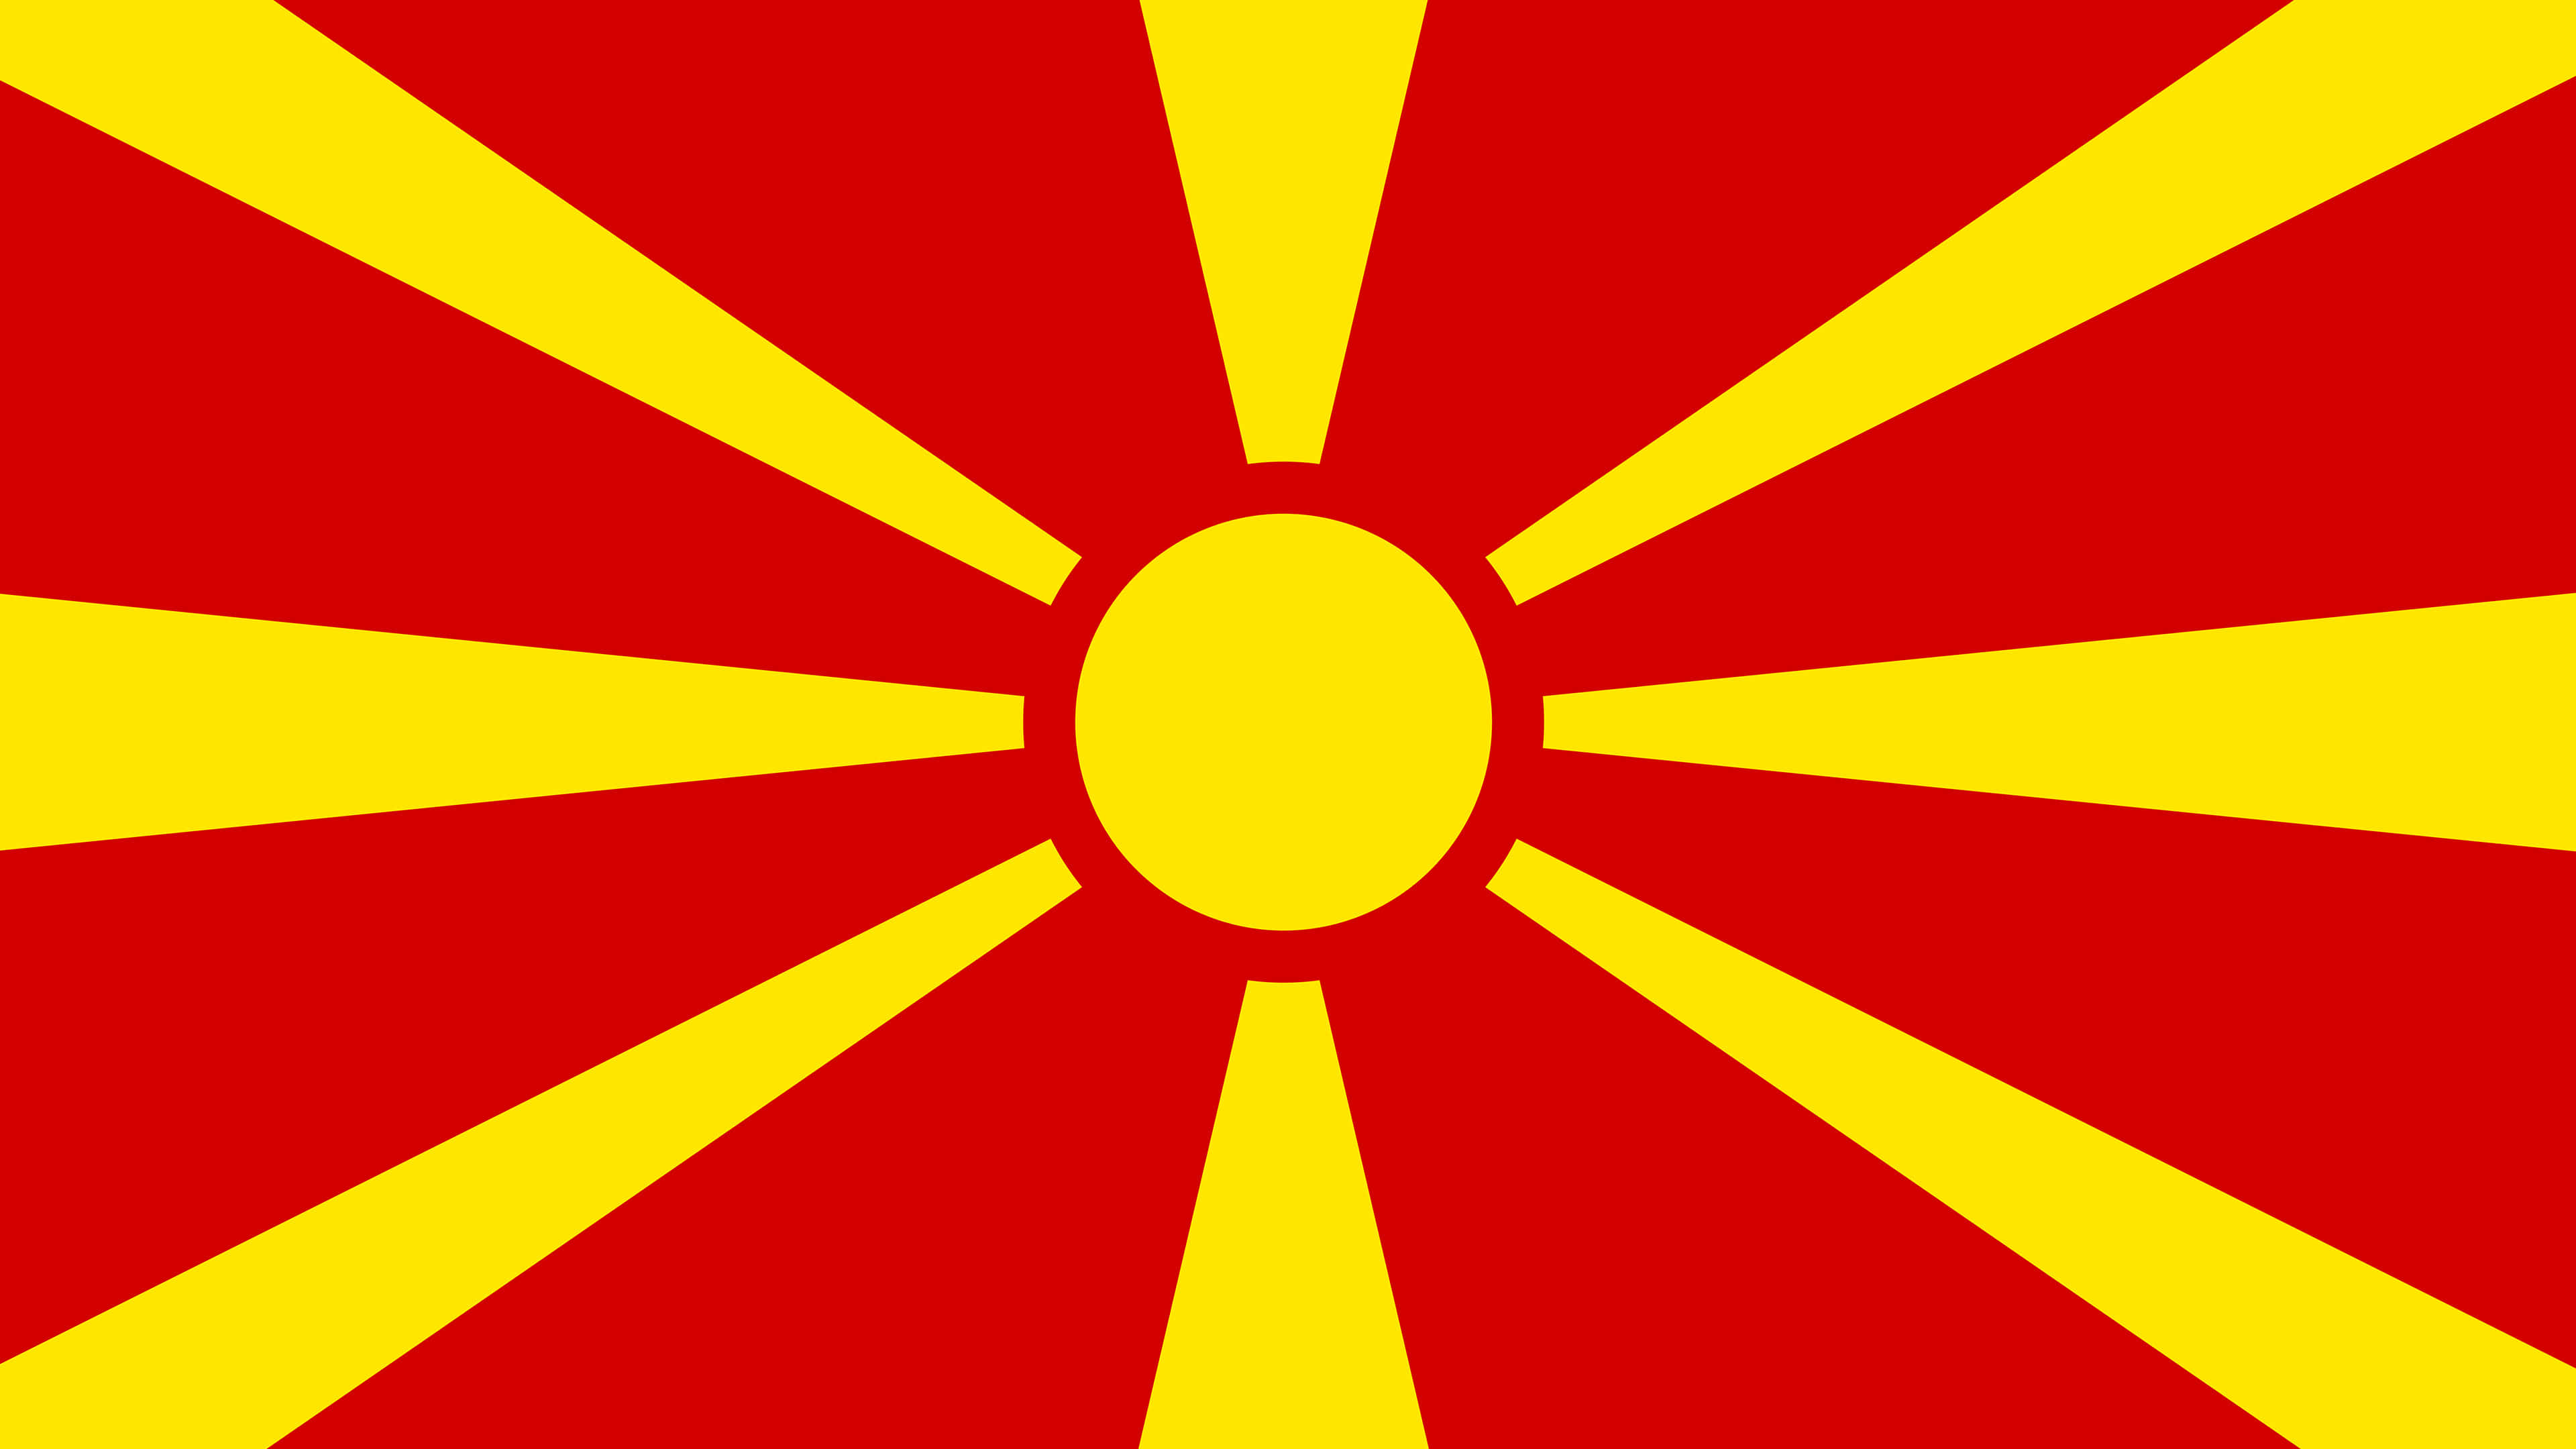 macedonia flag uhd 4k wallpaper